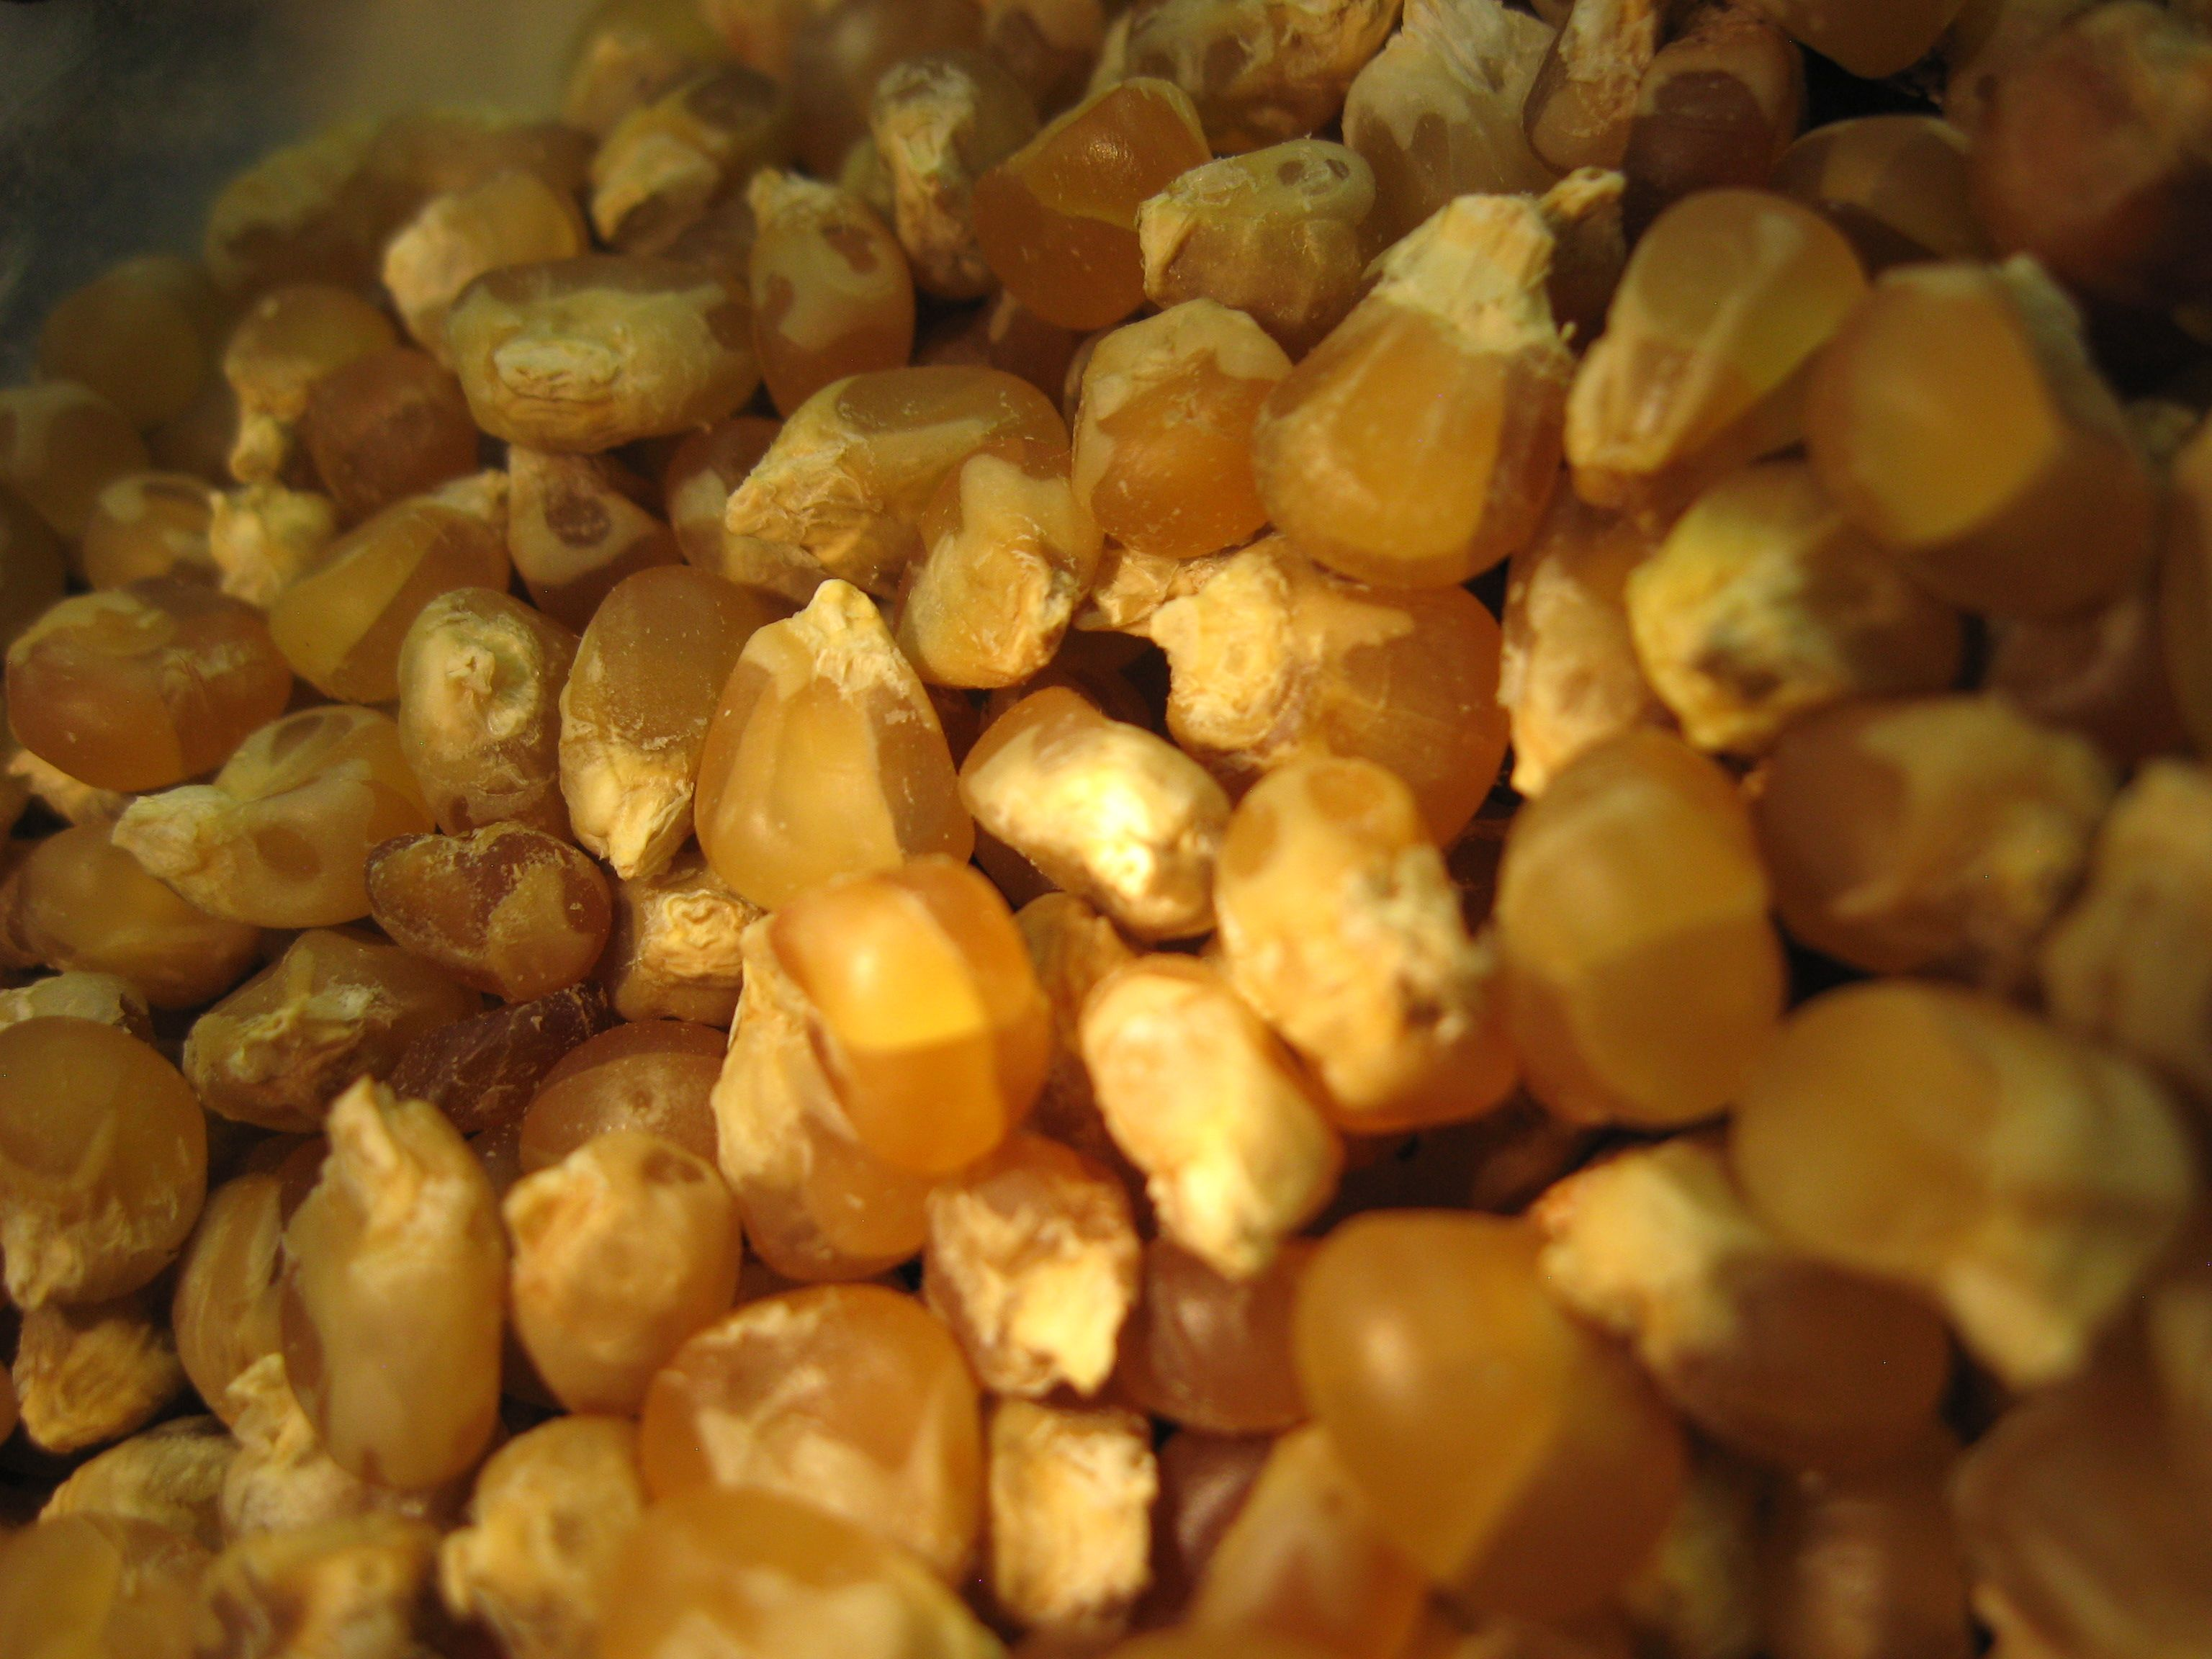 Dry Kernels Of Roasted Corn For Mutton Stew Food Roasted Corn